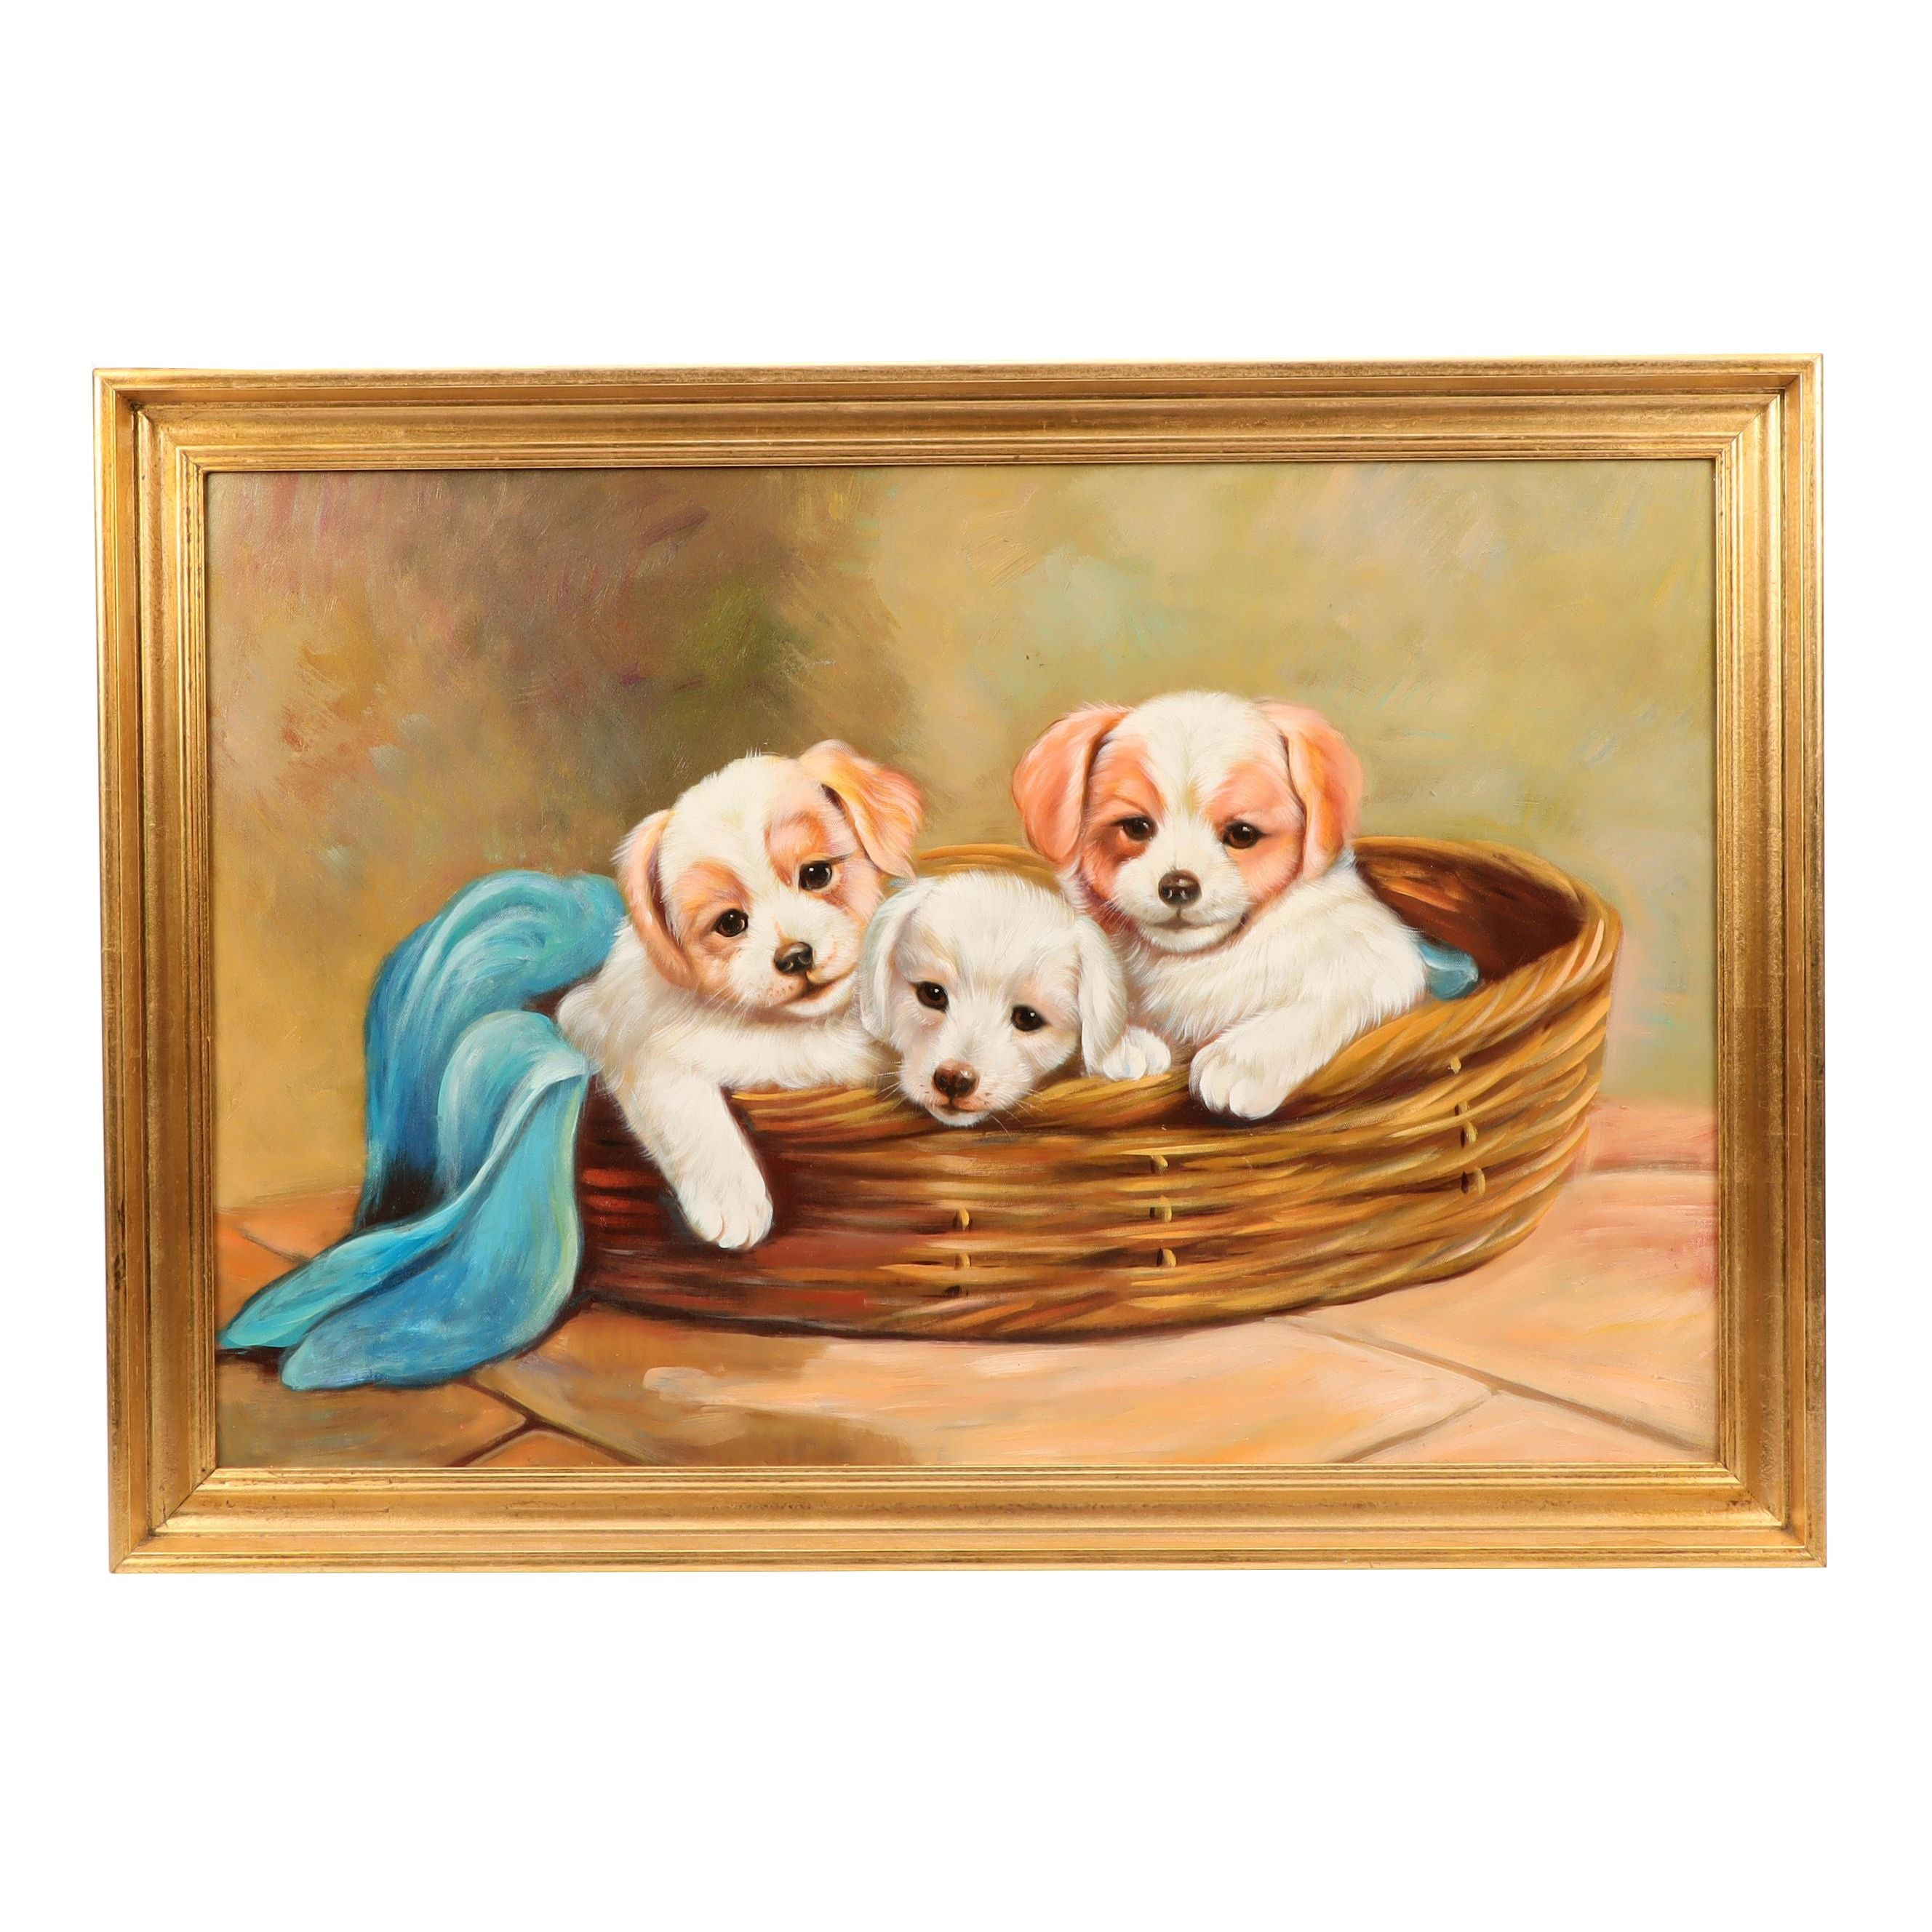 Oil Painting of Puppies in Basket